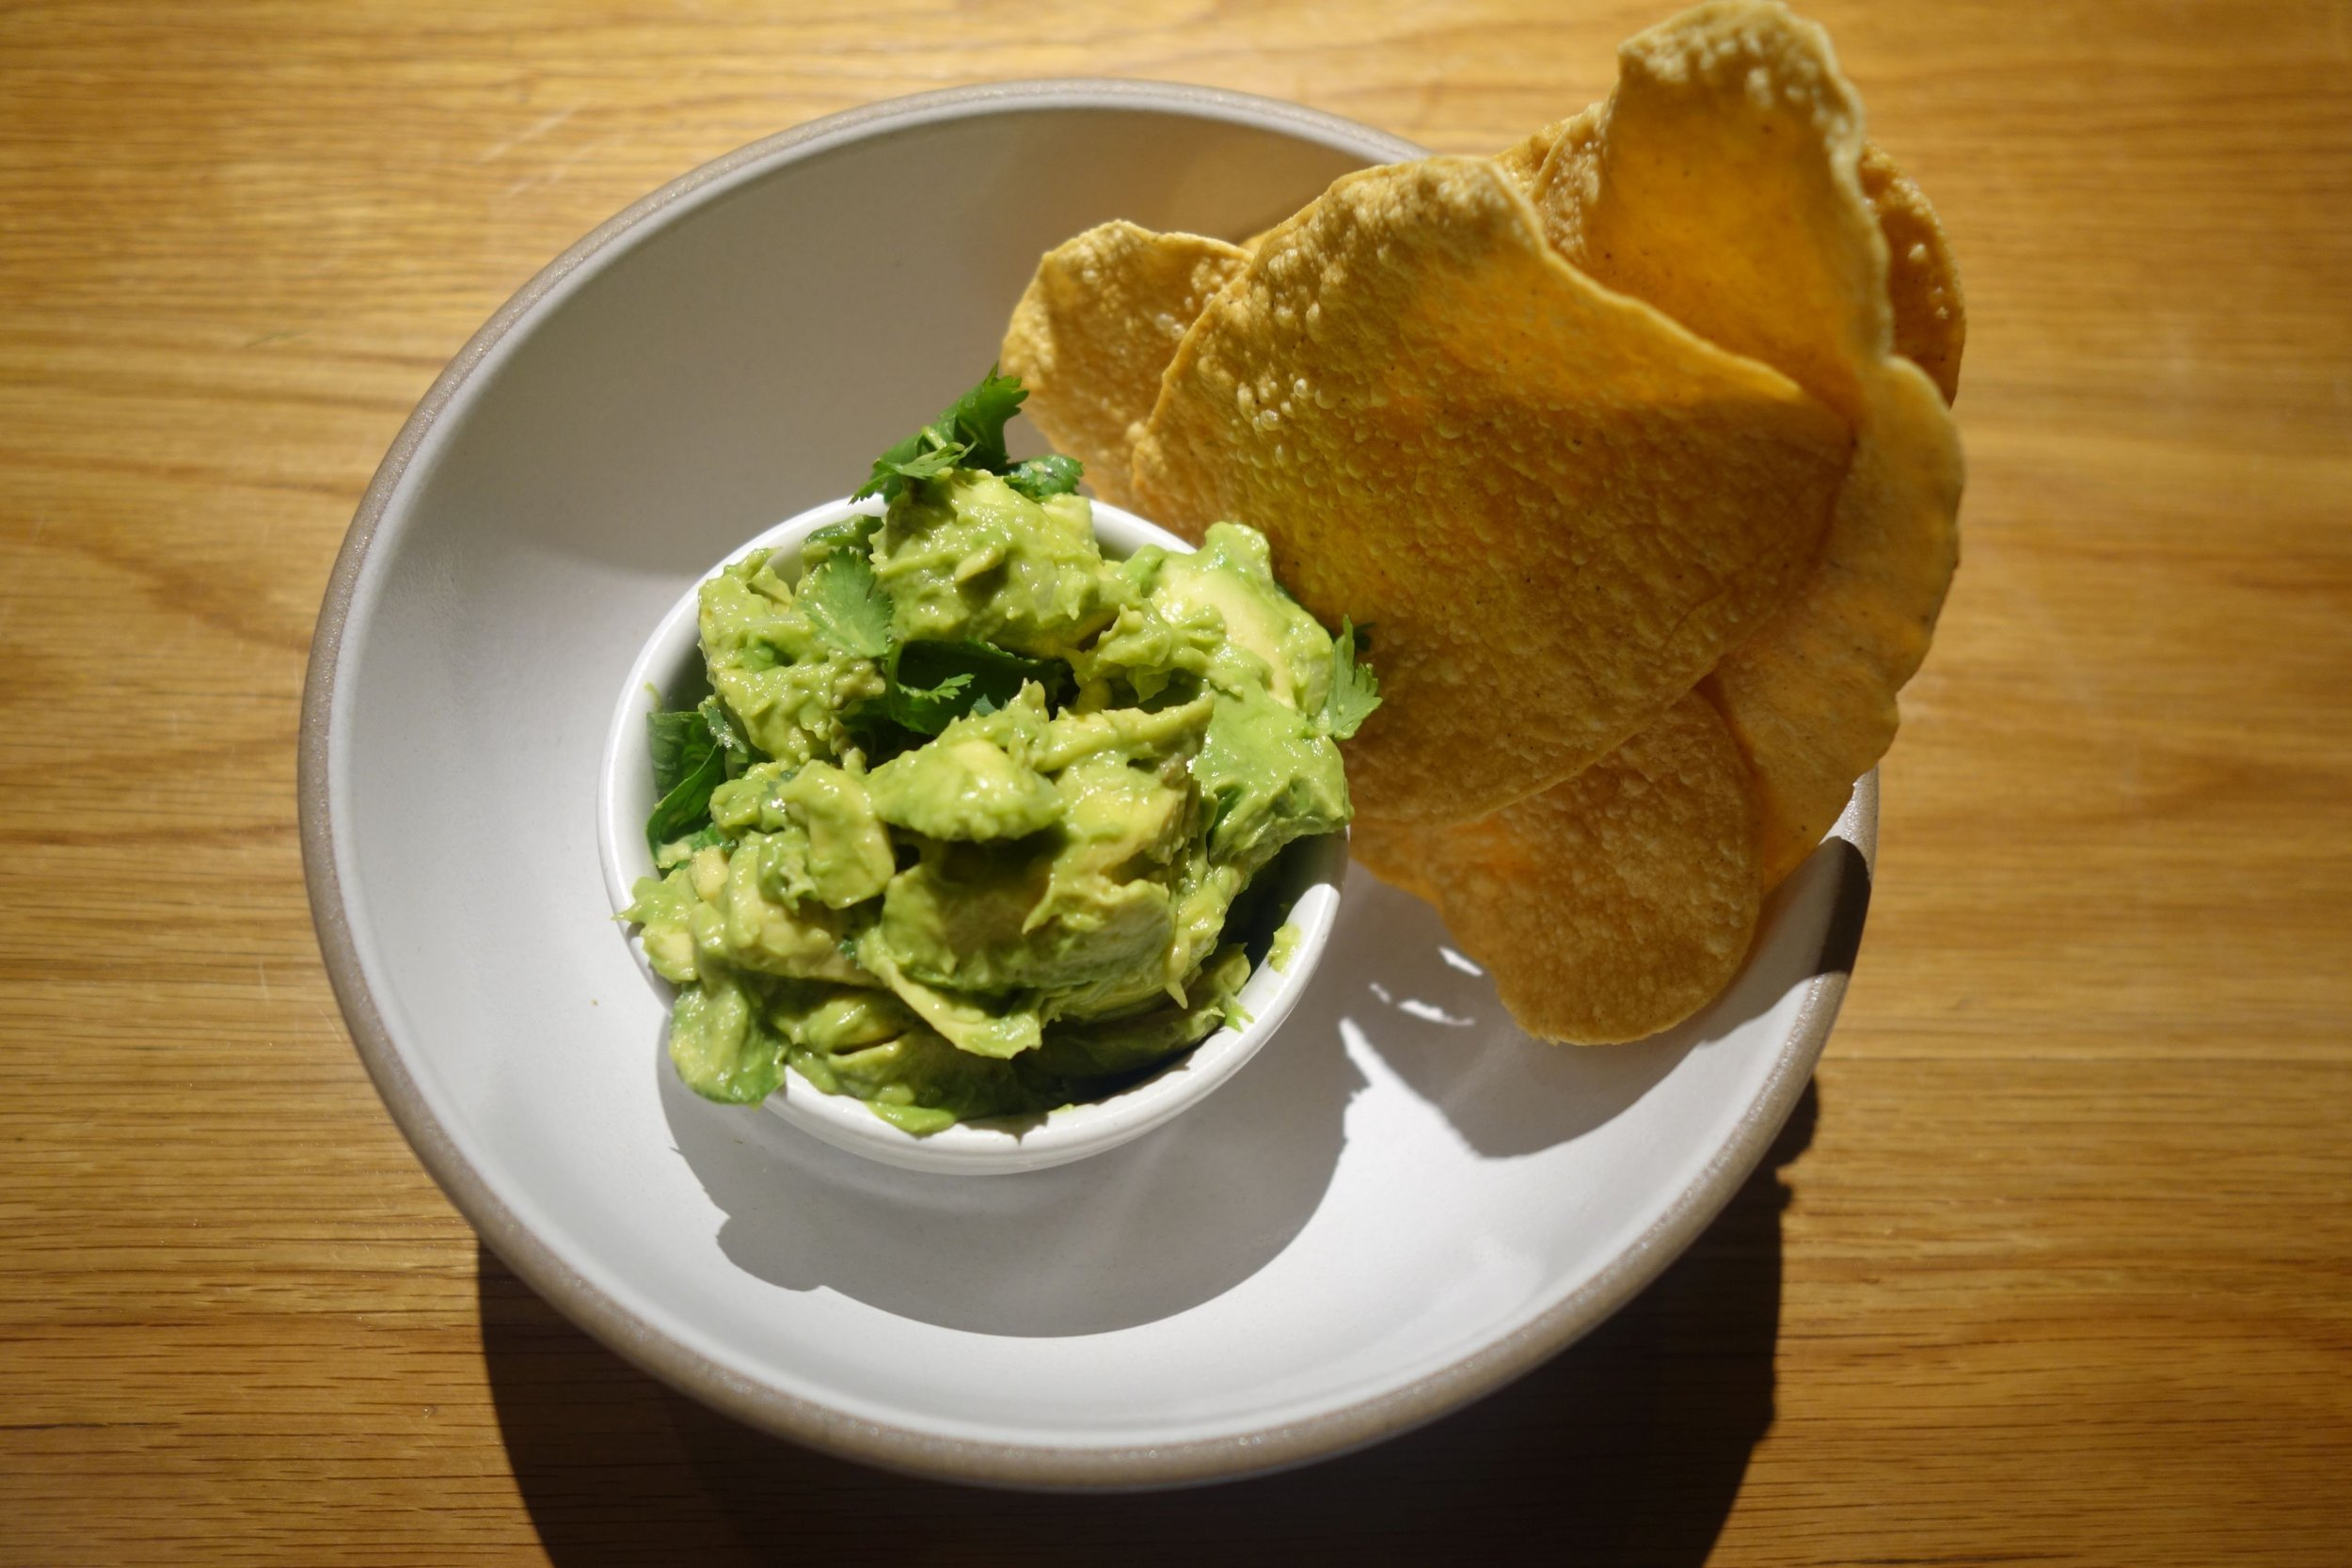 Guacamole & homemade chips.